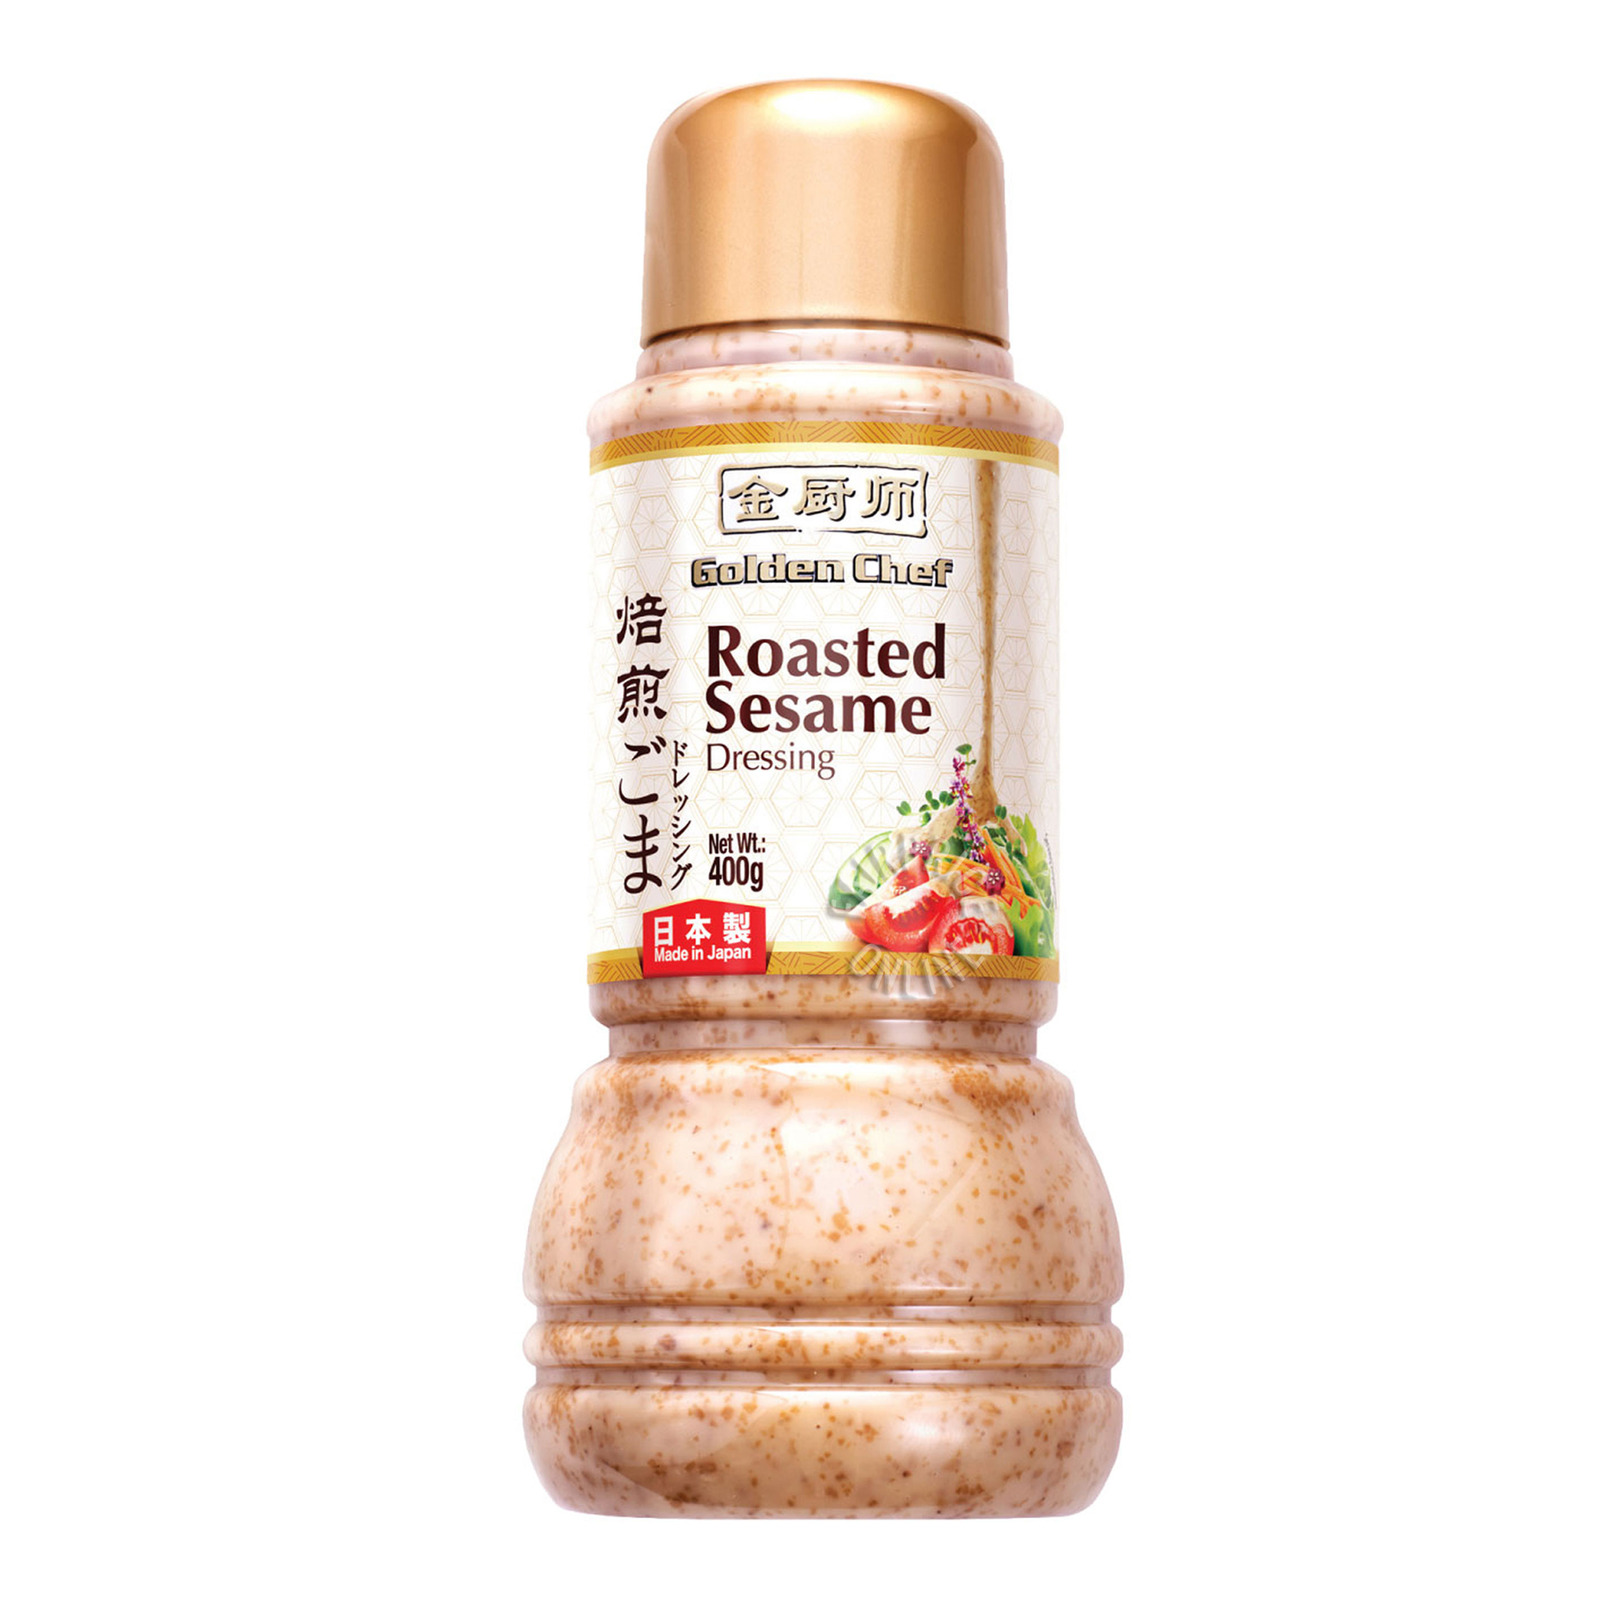 Golden Chef Dressing - Roasted Sesame